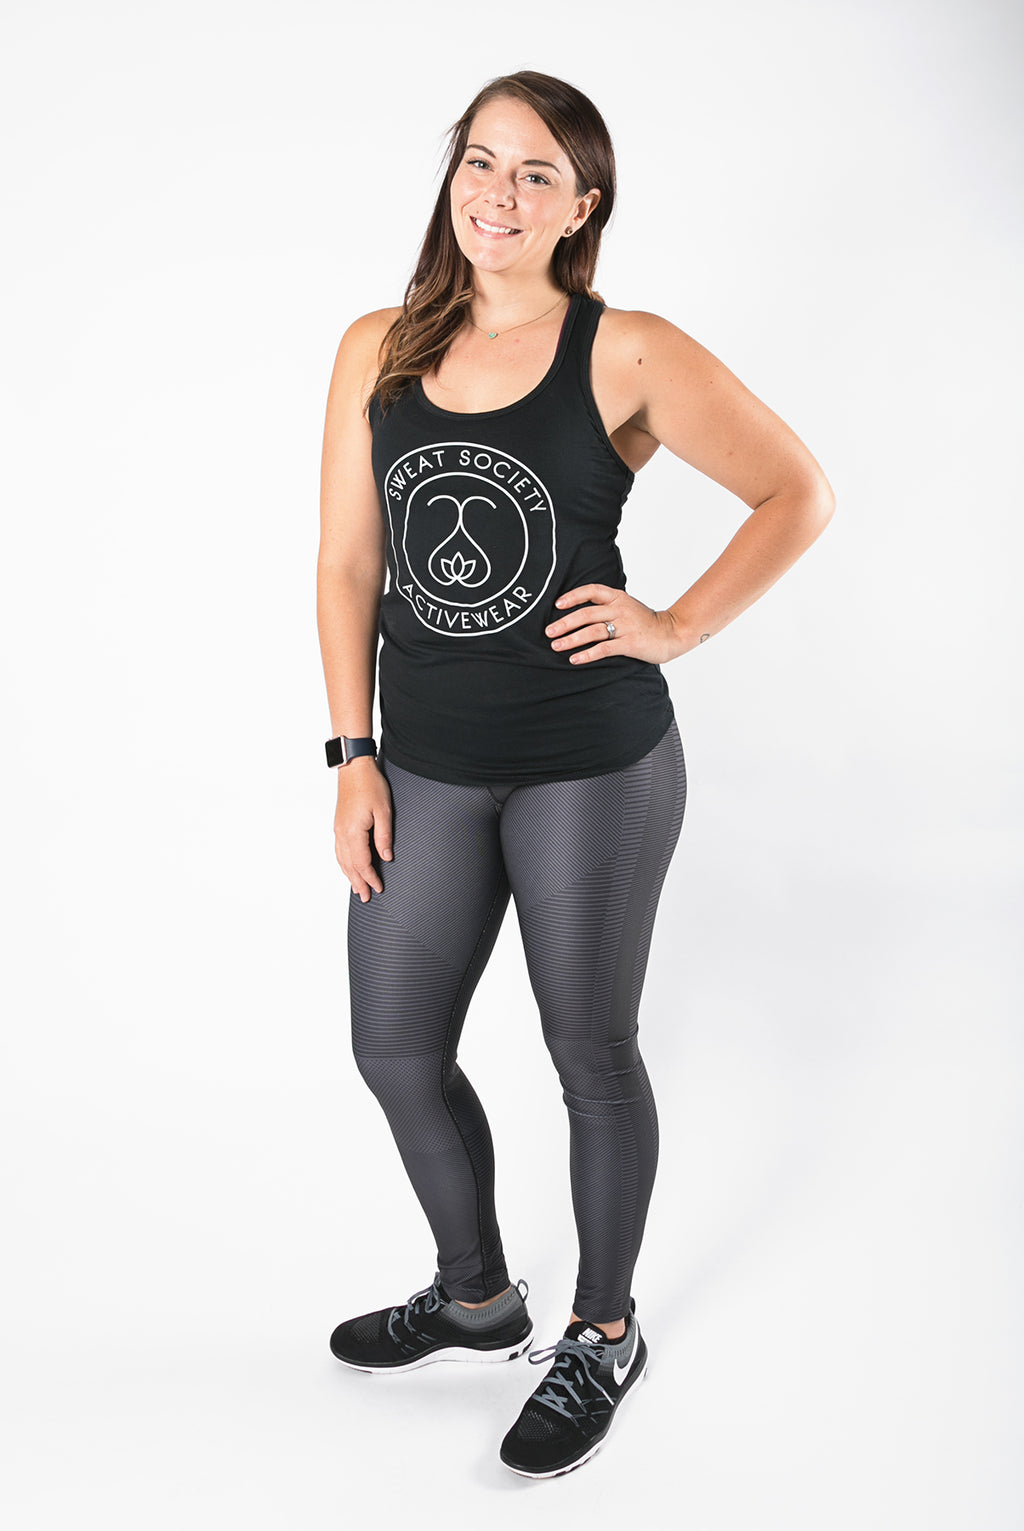 Sweat Society Krystal racerback Ethical Activewear